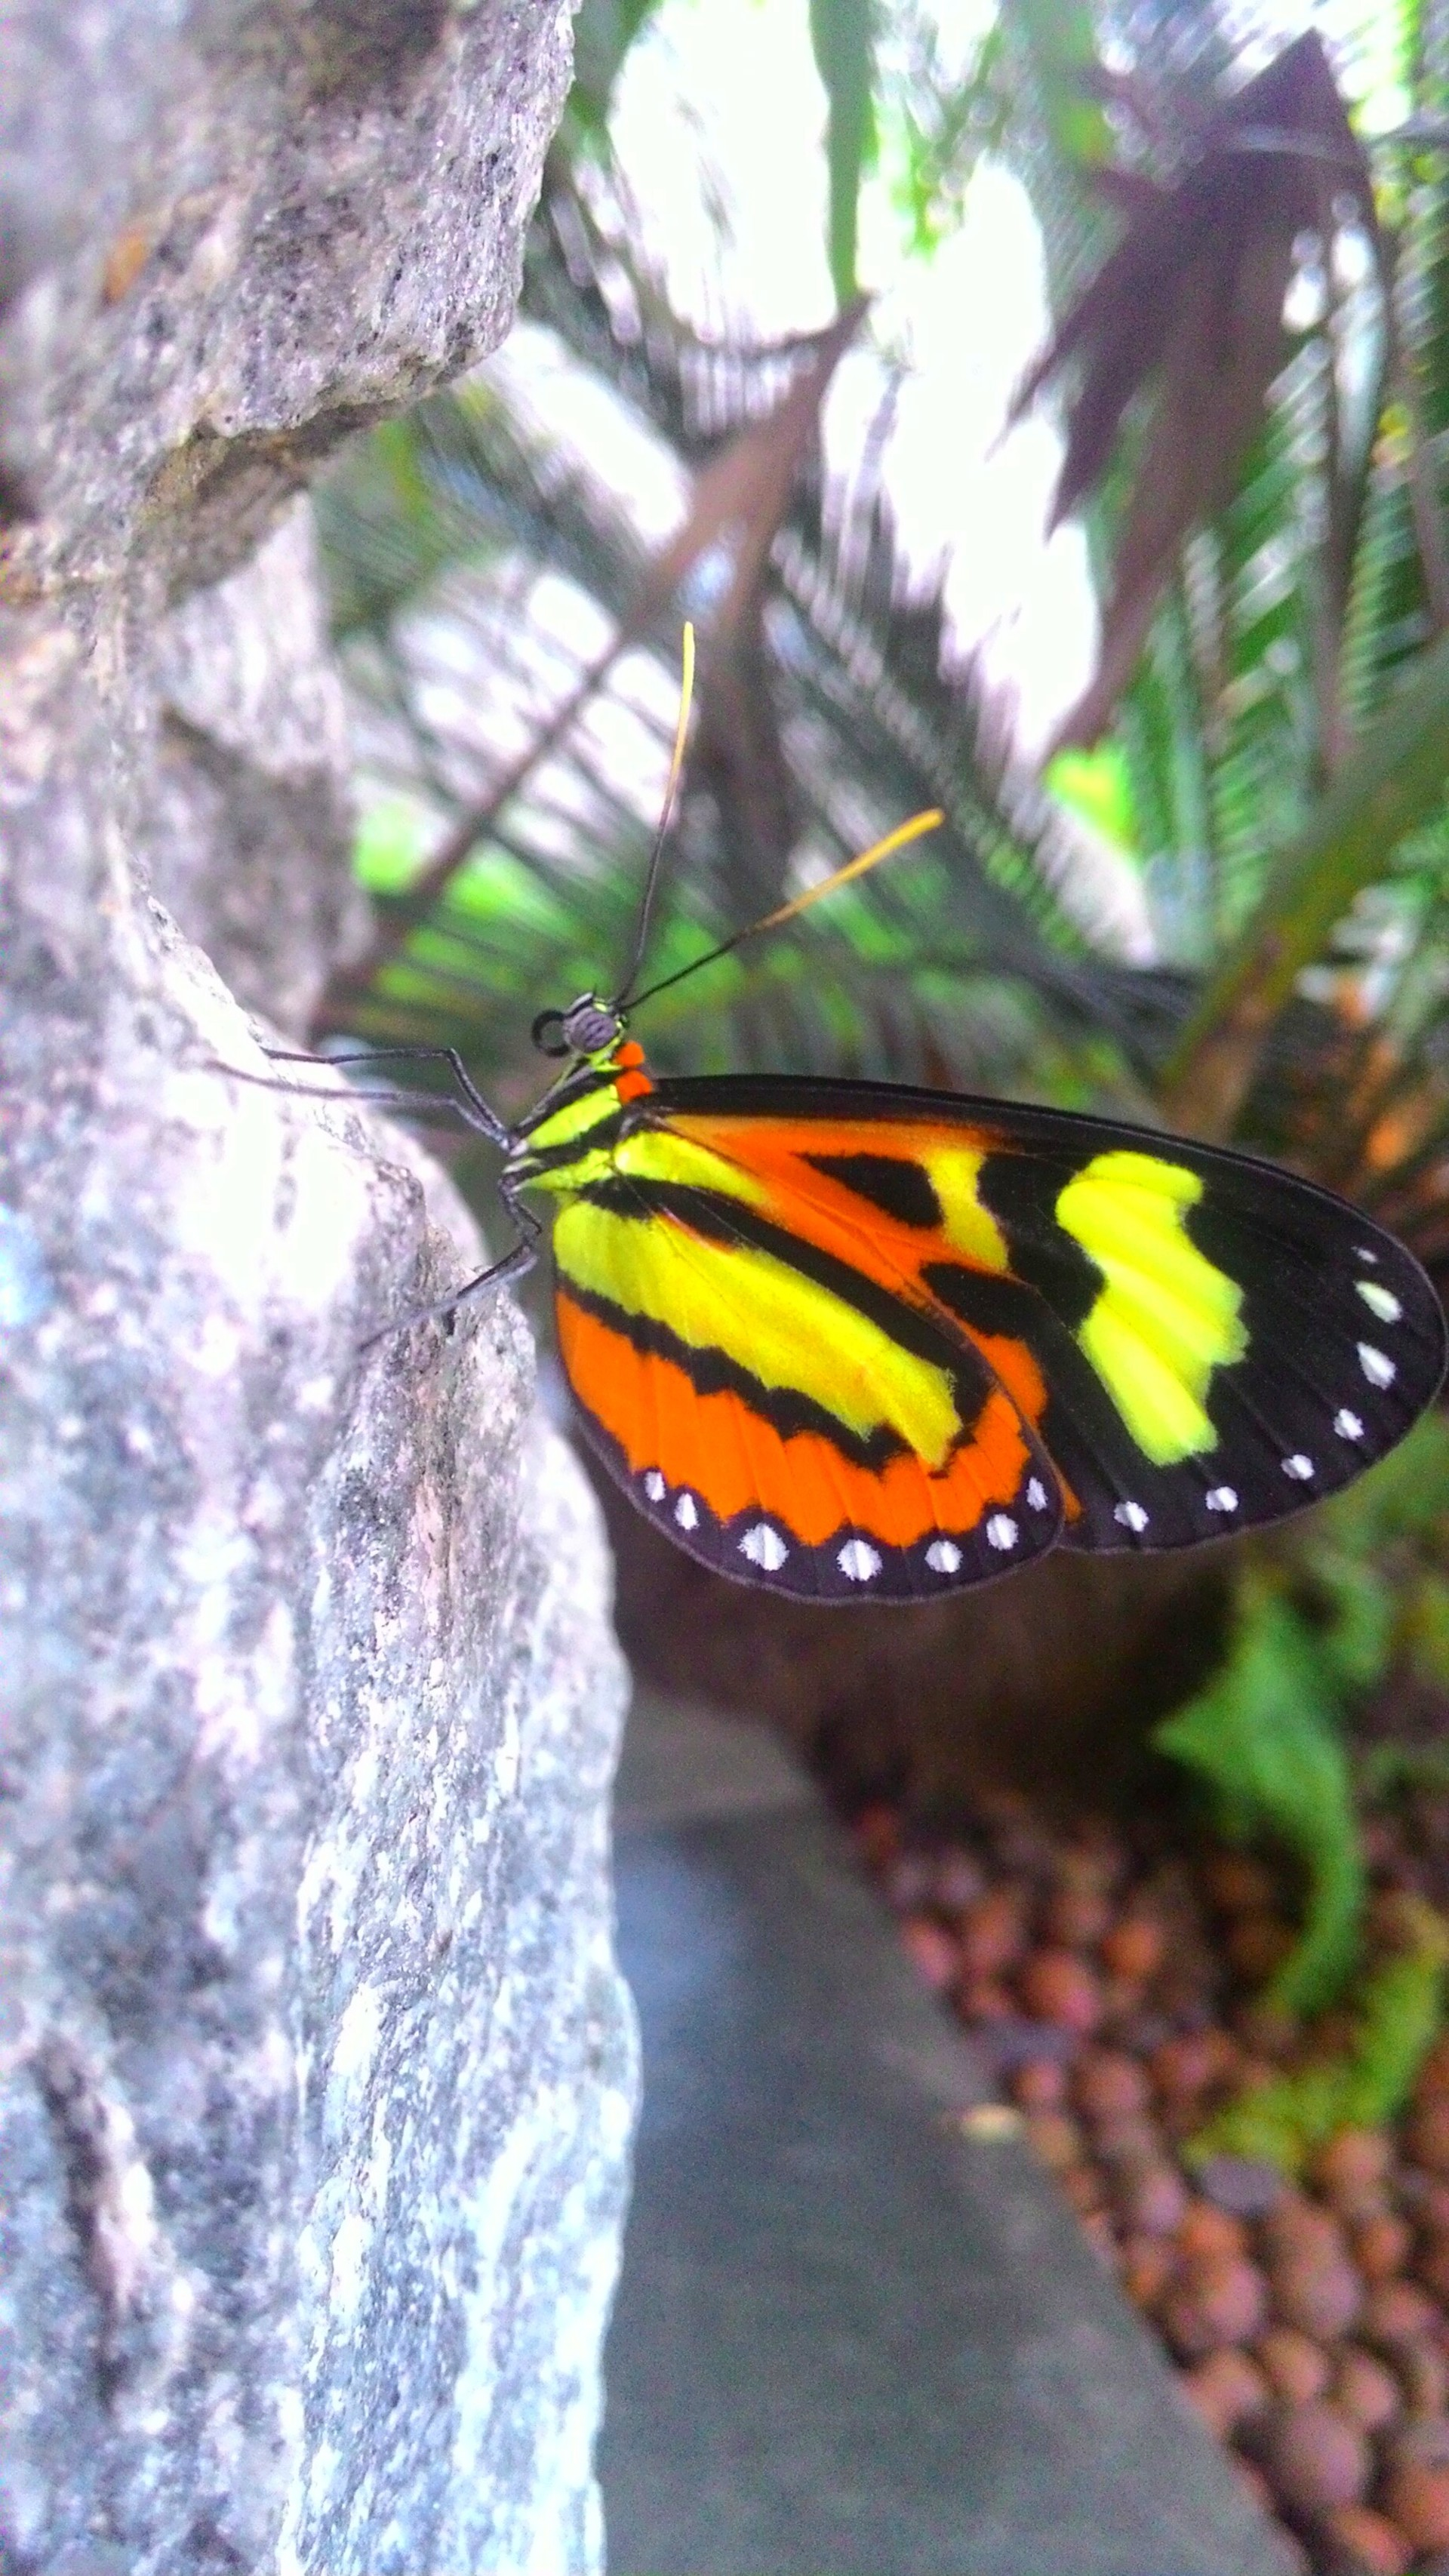 Butterfly perching on rock | nature, insect, photography, color image